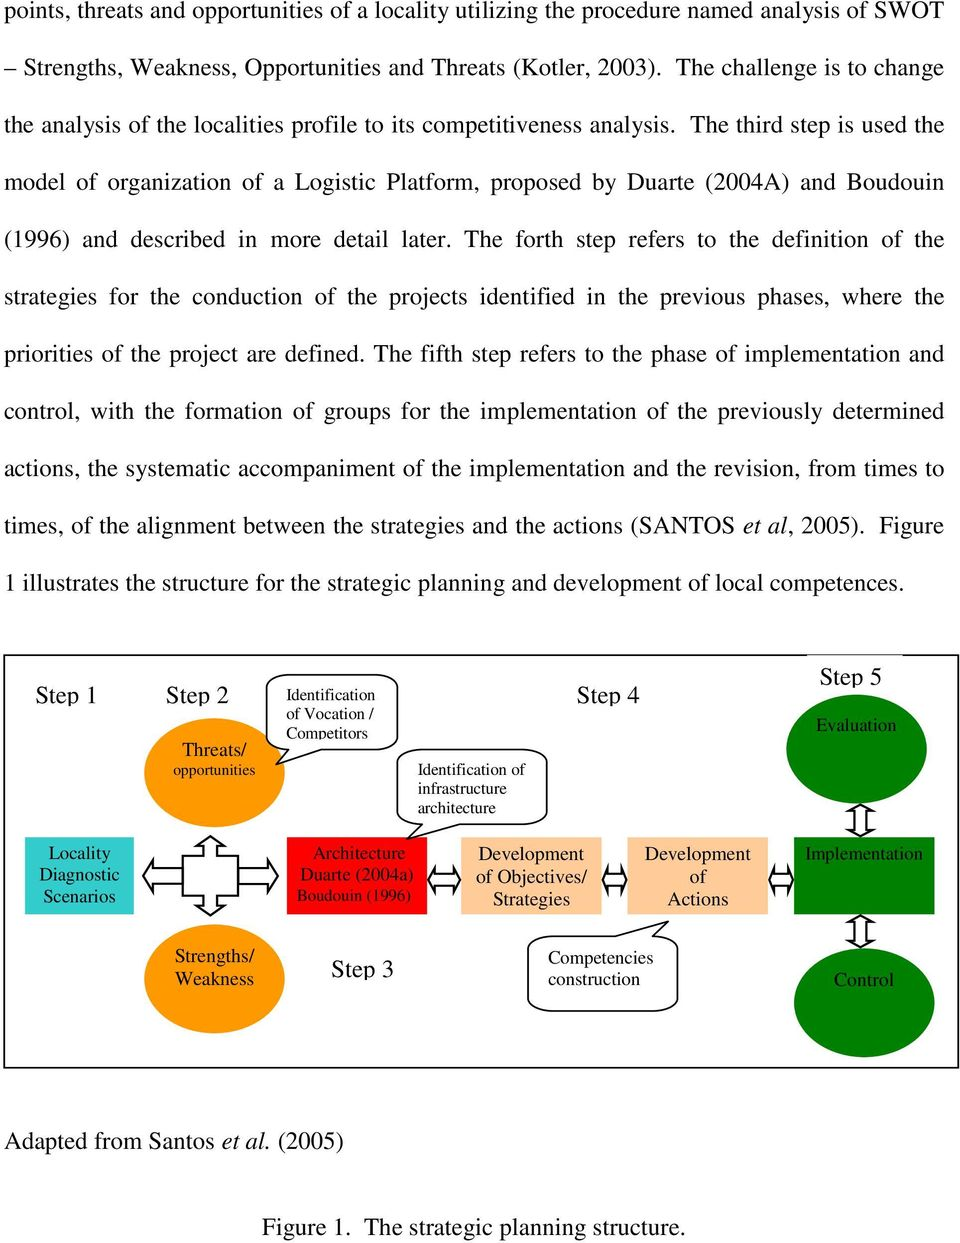 The third step is used the model of organization of a Logistic Platform, proposed by Duarte (2004A) and Boudouin (1996) and described in more detail later.